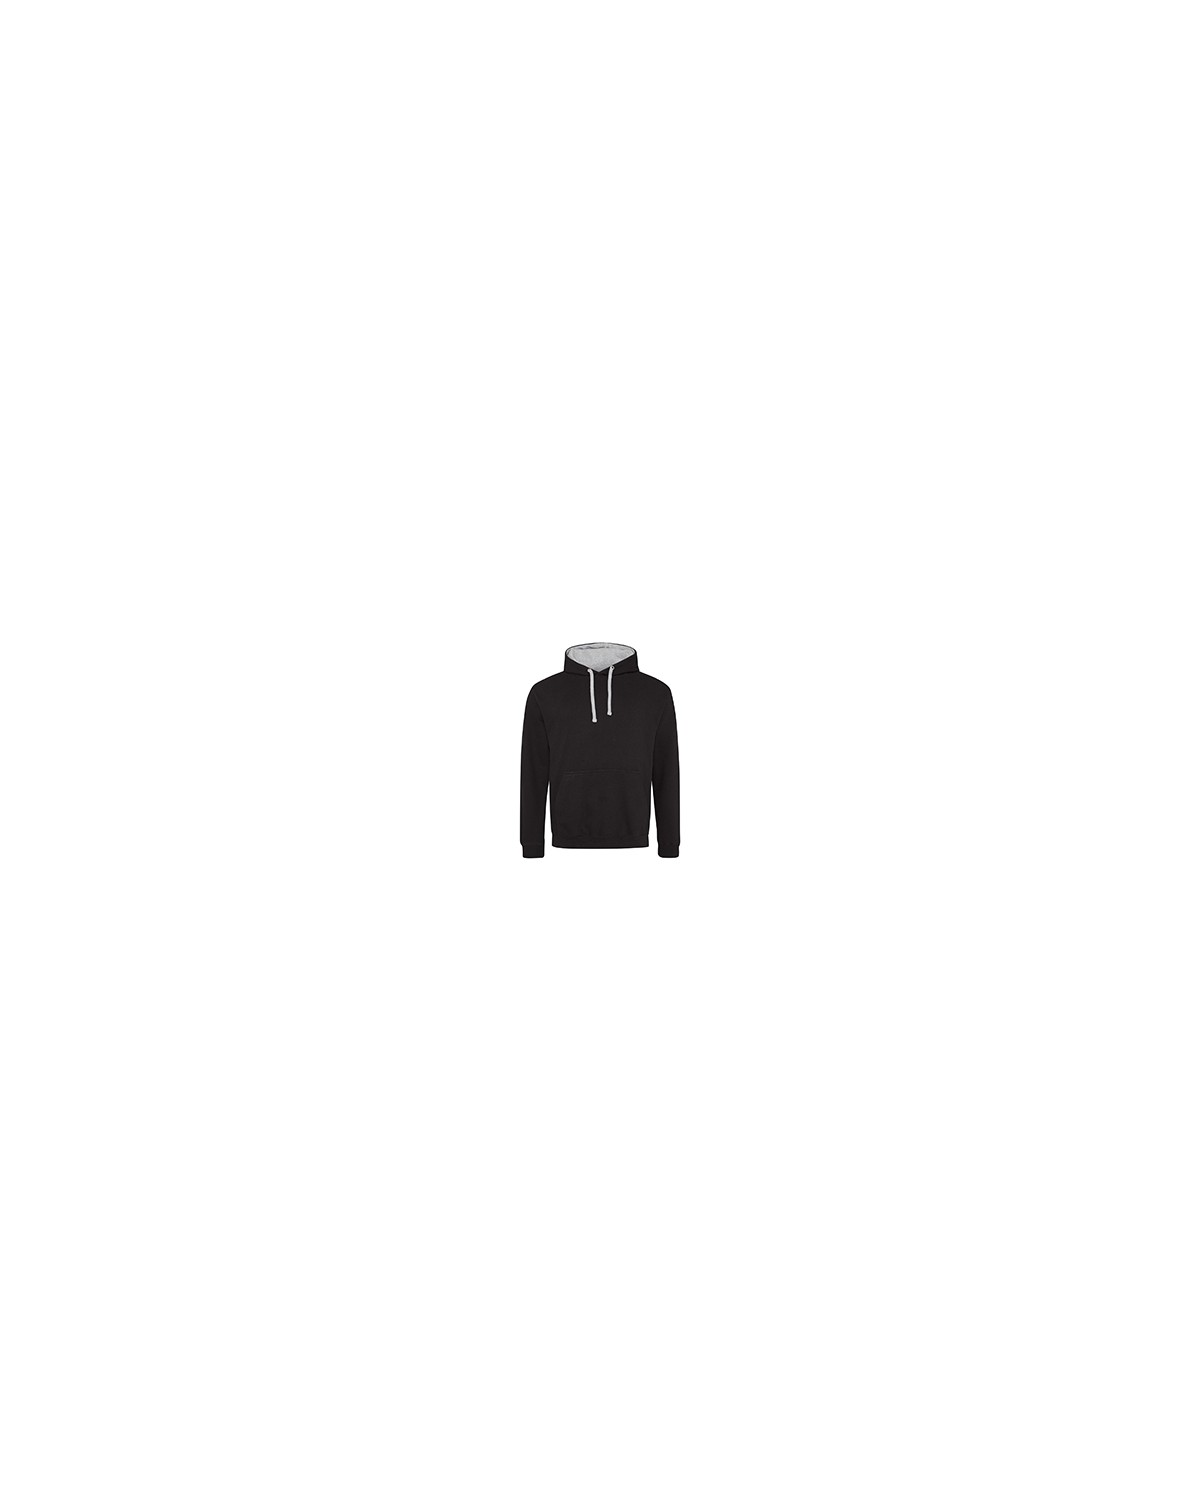 JHA003 Just Hoods By AWDis JET BLK/ HTH GRY